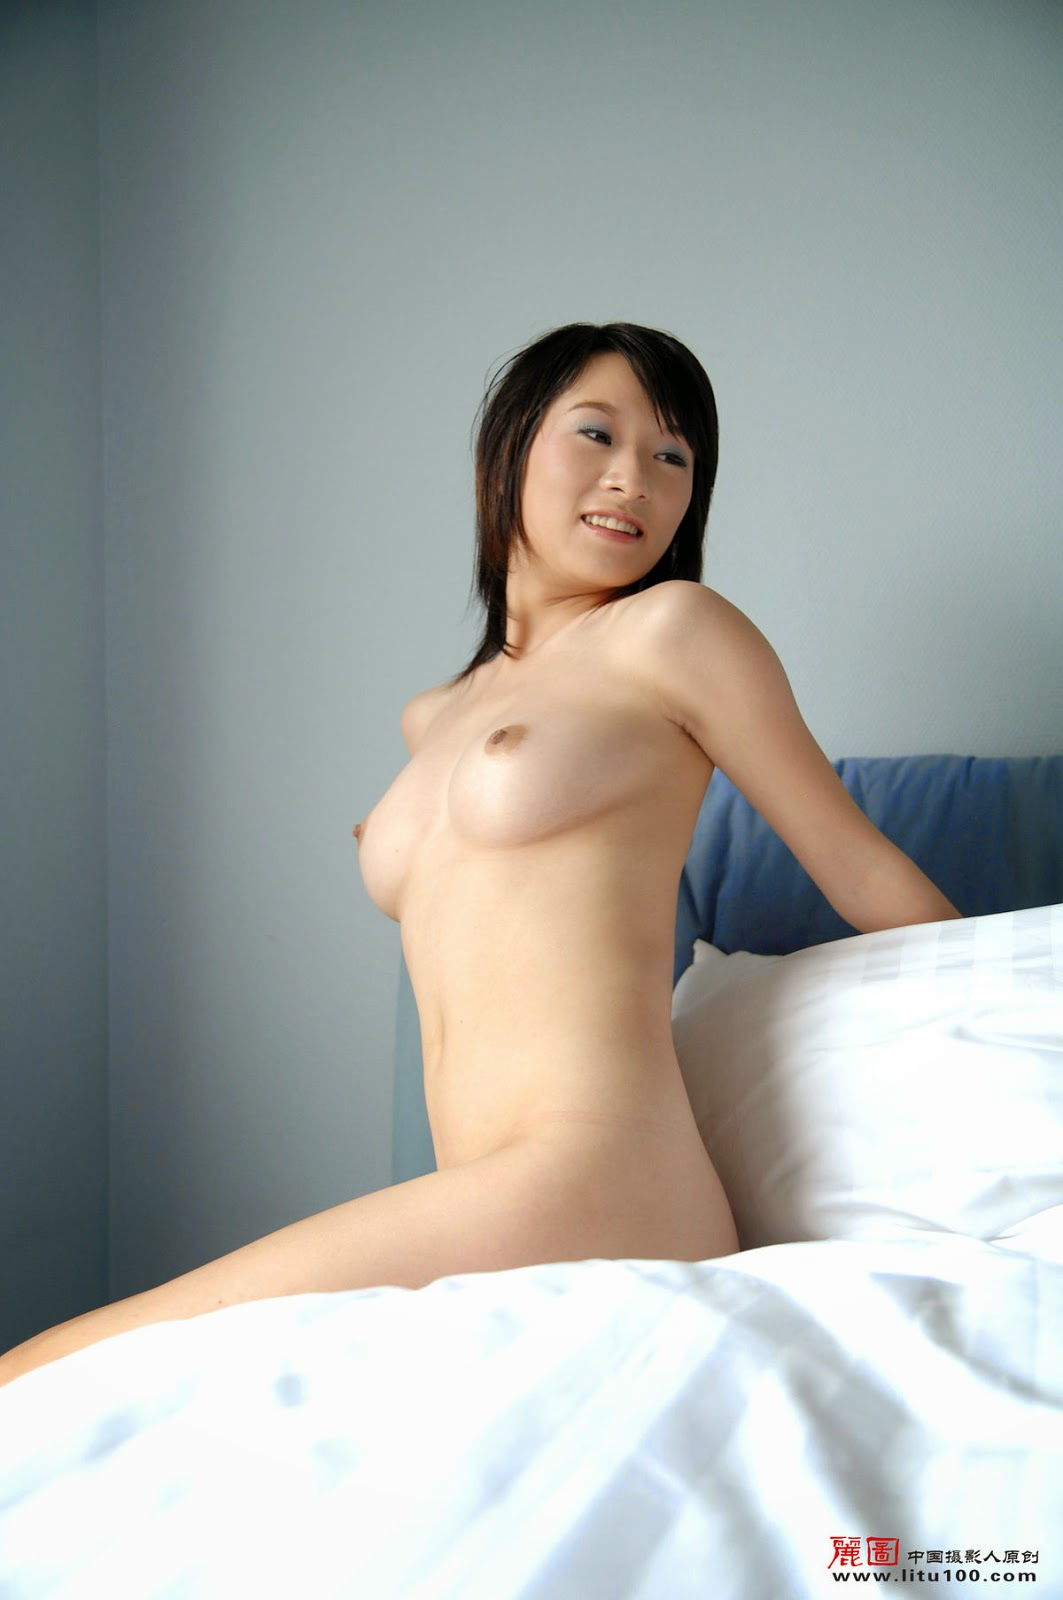 Chinese nude art model